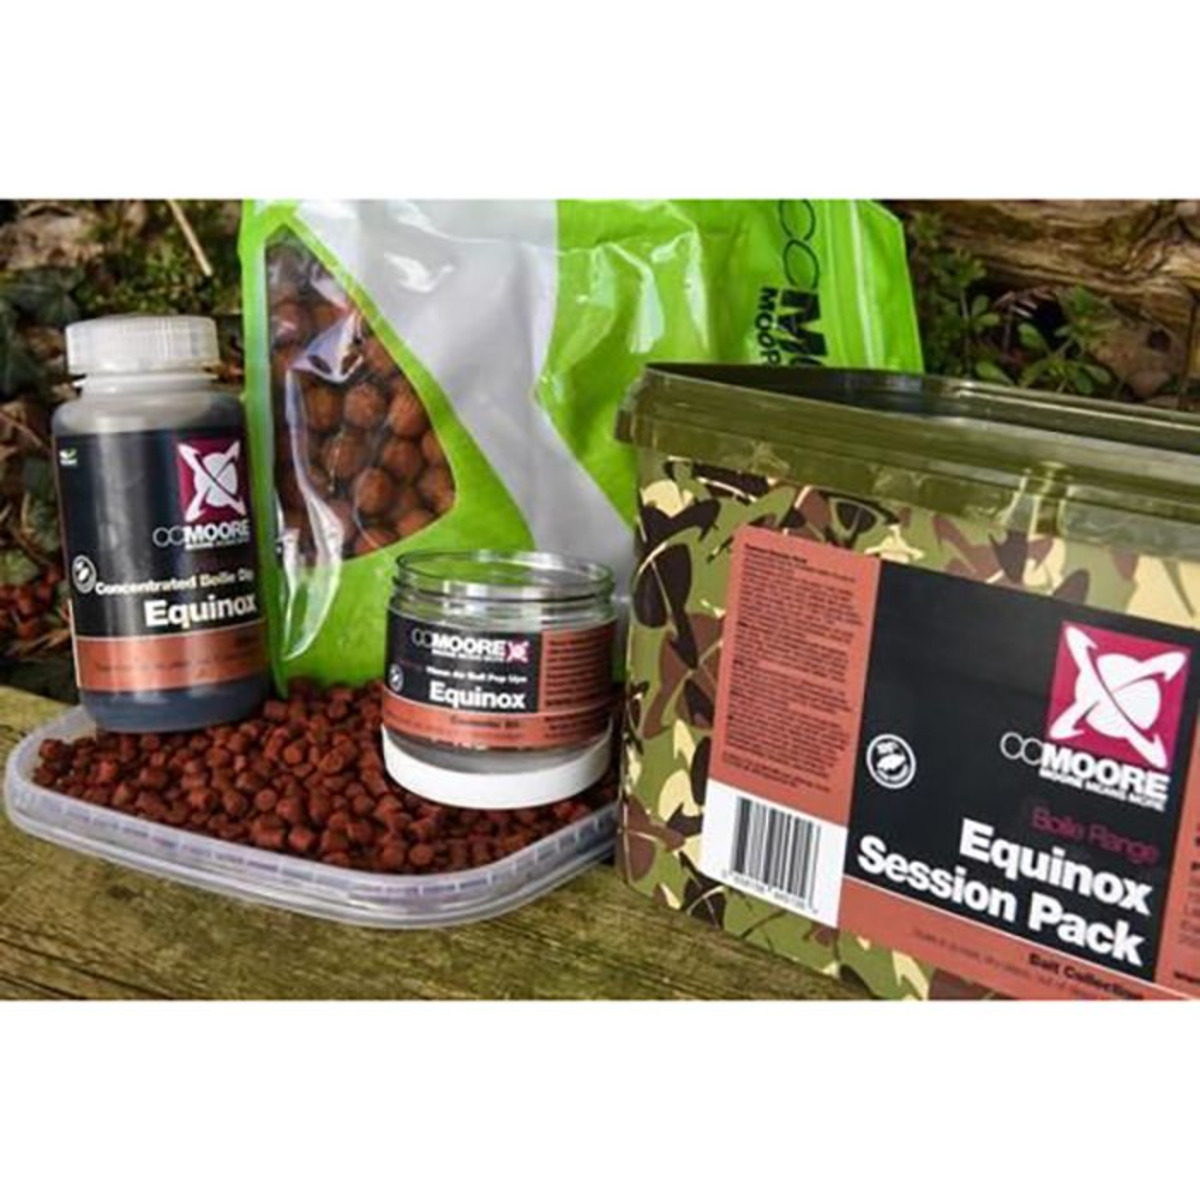 CC Moore Equinox Boilie Session Pack - Pack